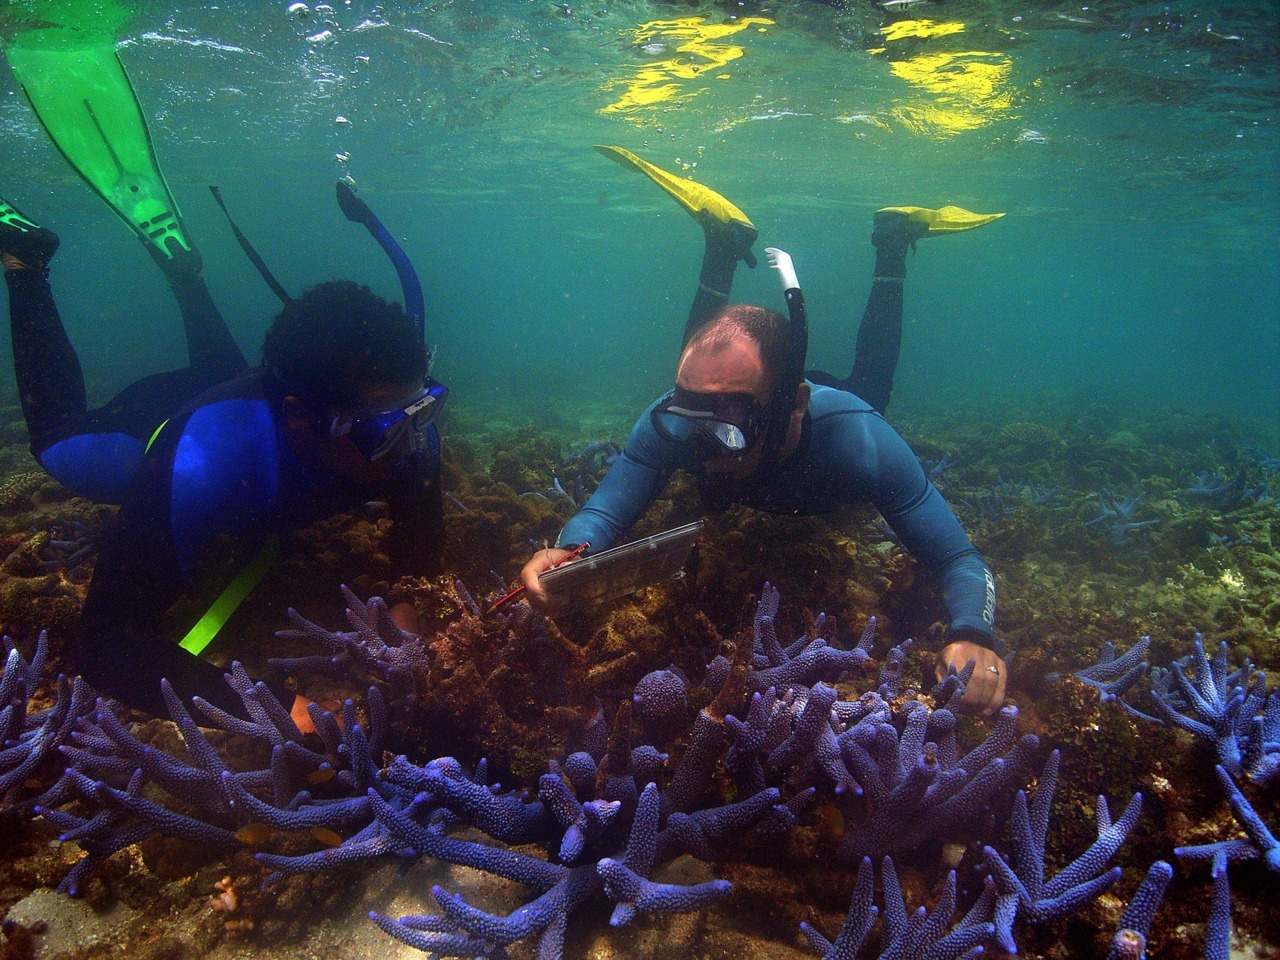 Indigenous trainee Lwayne Boslem with Paul Marshall, scientist from GBRMPA http://ow.ly/6fo1v collecting data on healthy corals. Photo: Sandy Scheltema #coralbleachingproject #greatbarrierreef #photooftheday